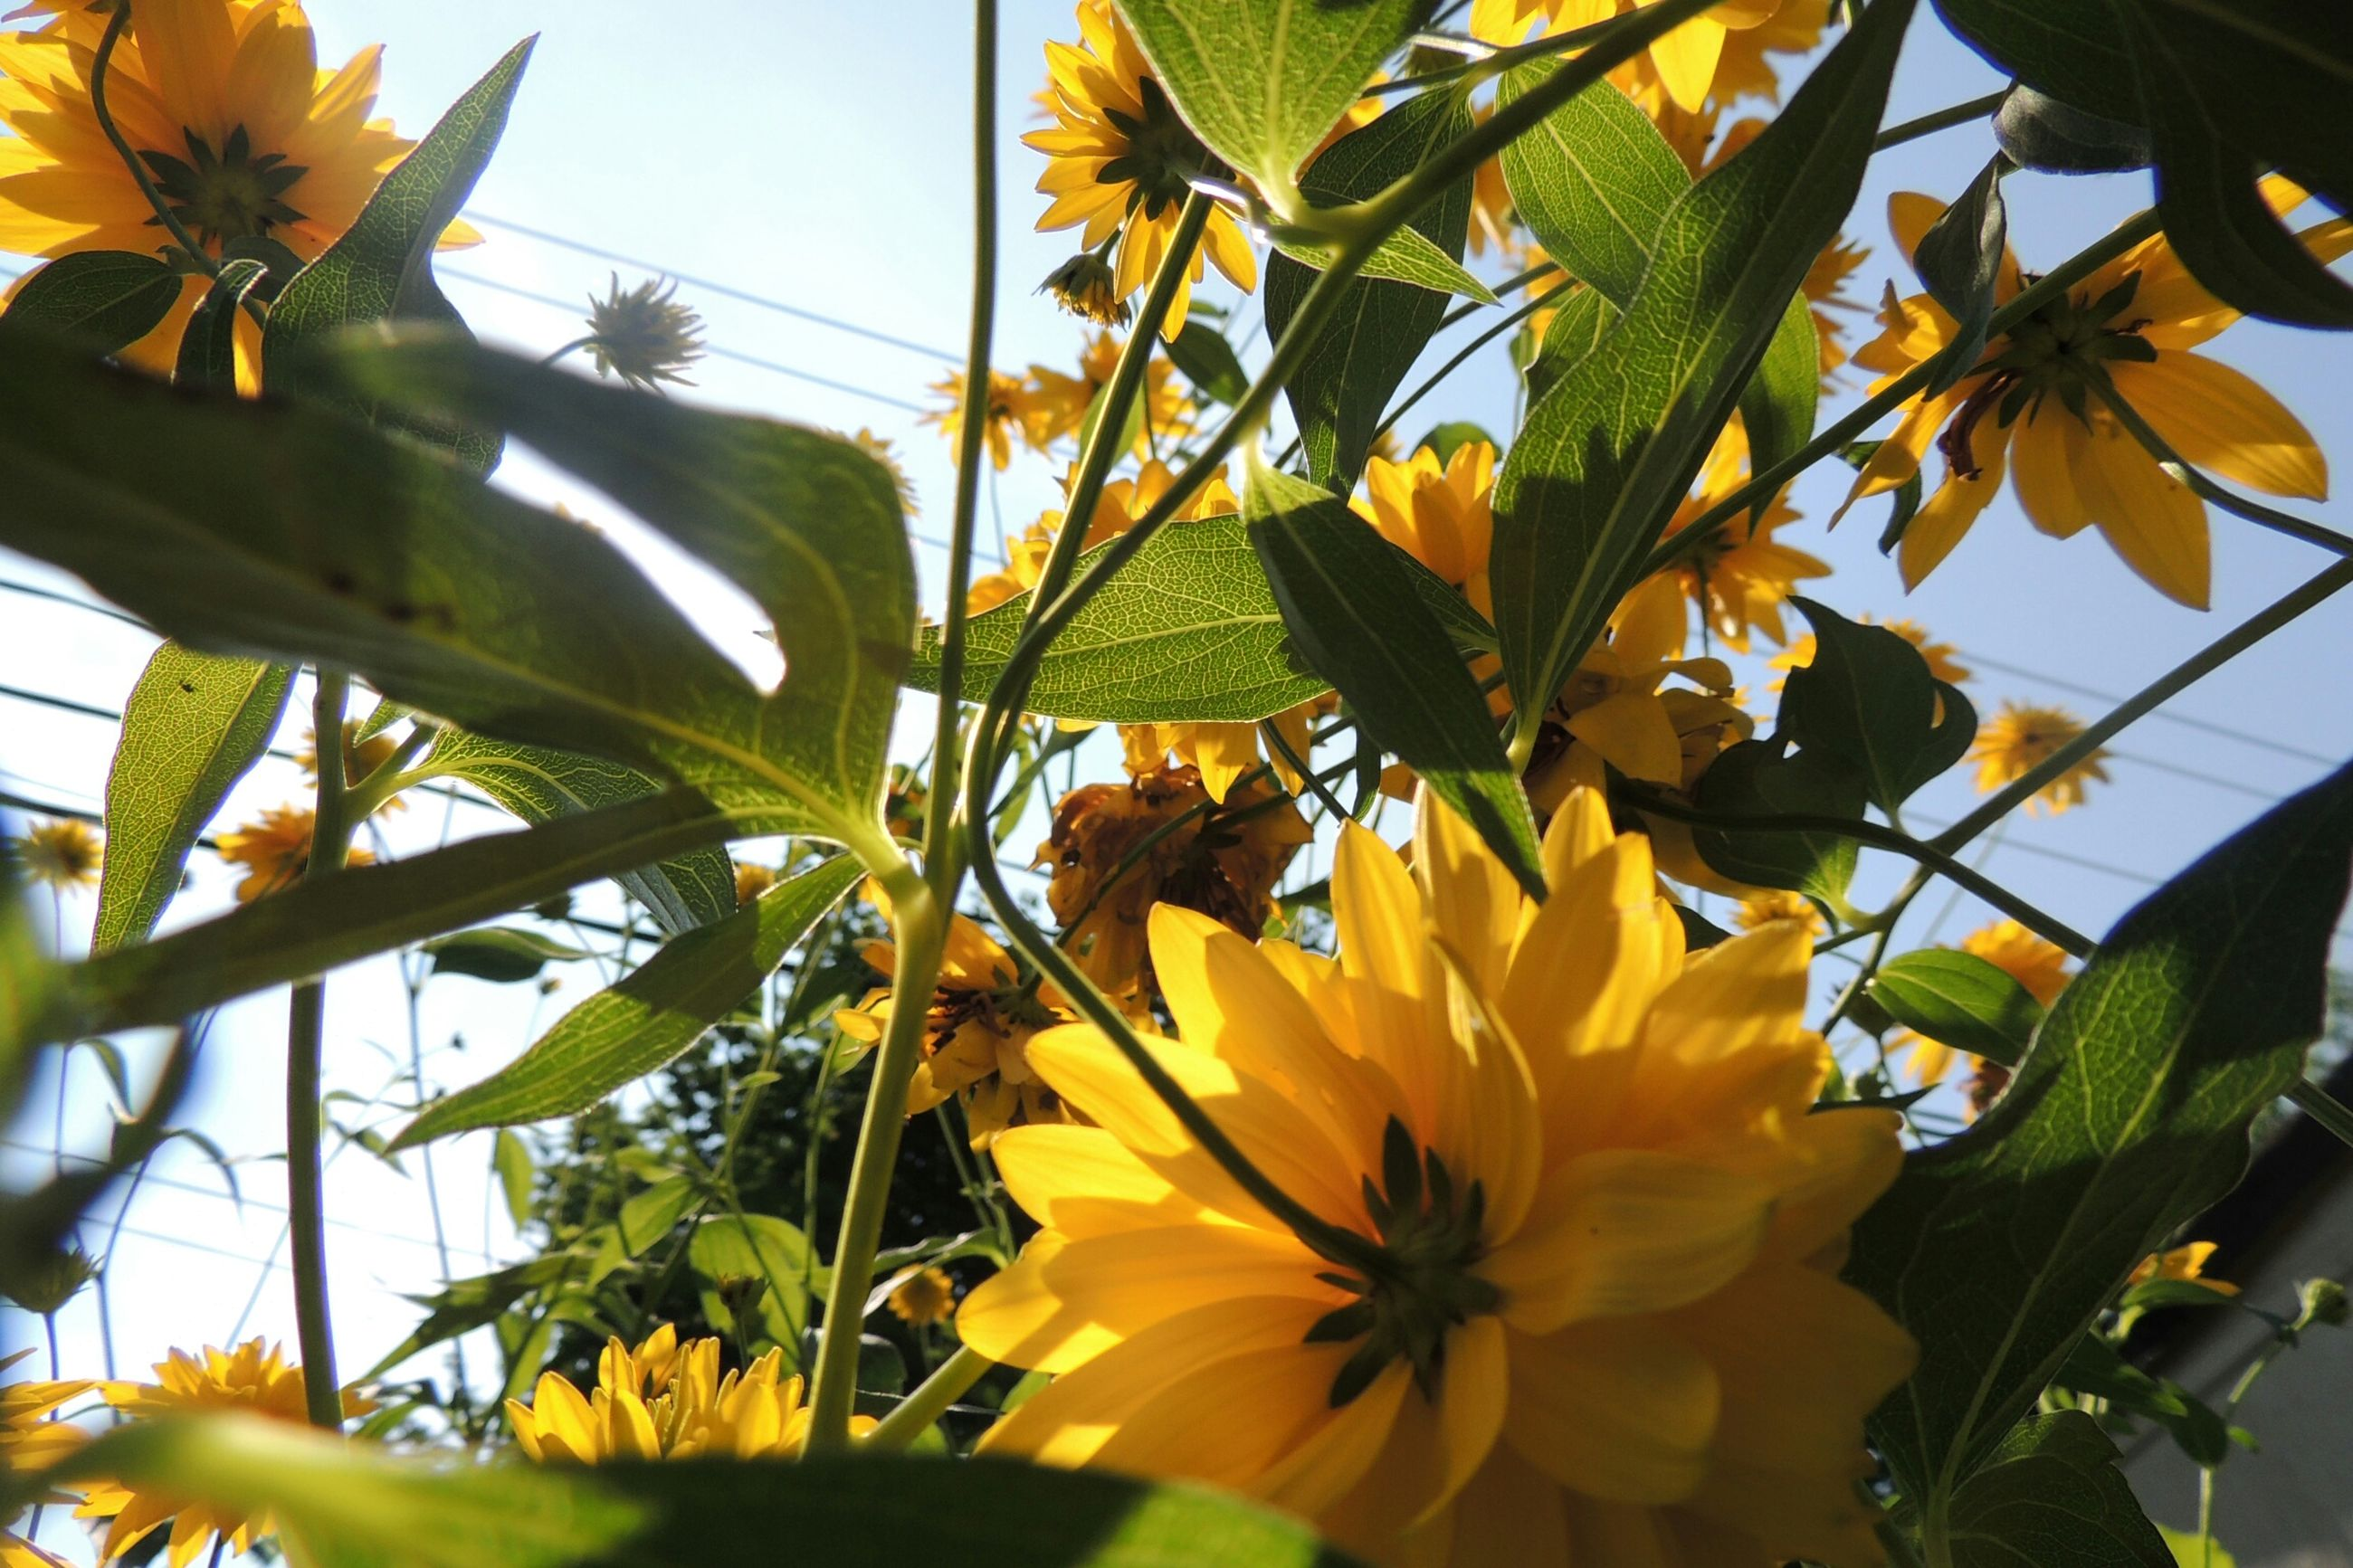 flower, freshness, yellow, growth, petal, fragility, leaf, flower head, sunflower, plant, beauty in nature, blooming, nature, low angle view, close-up, in bloom, pollen, green color, blossom, sunlight